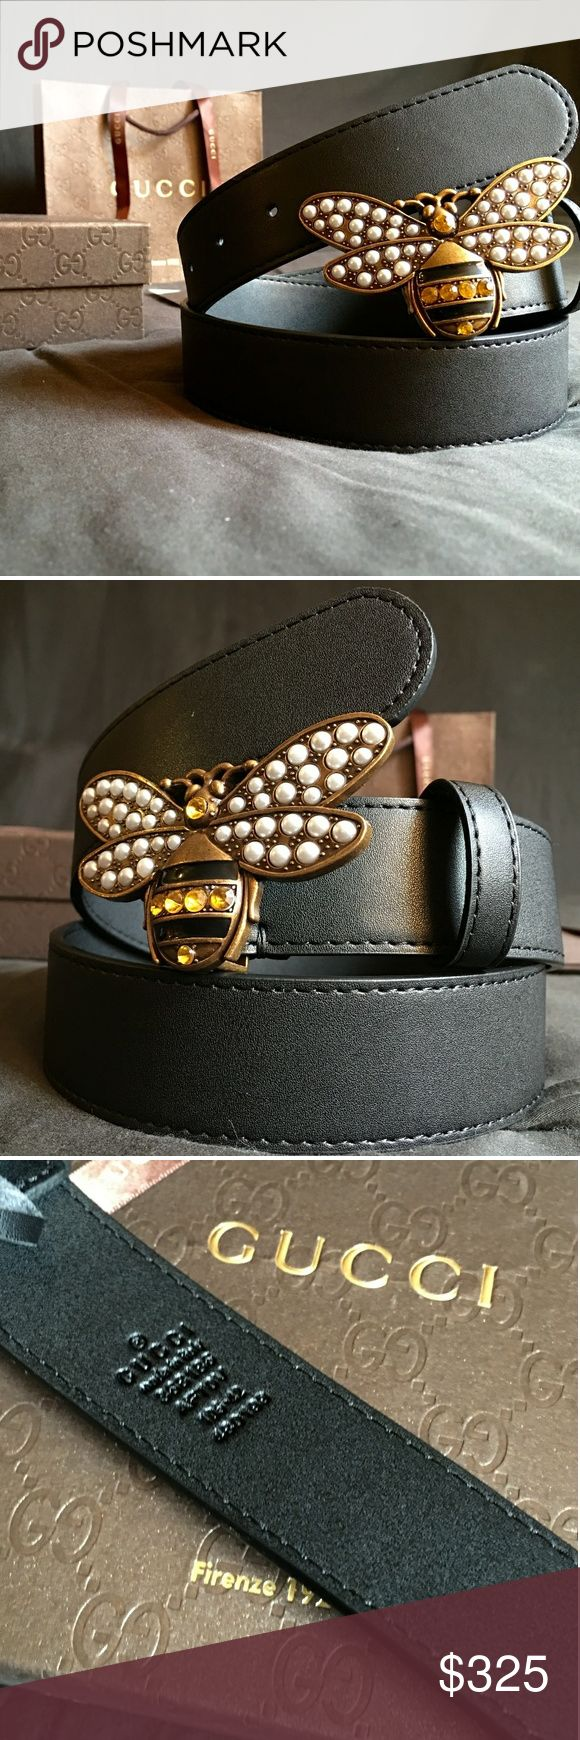 """Gucci Bee Belt!!! Gucci Bee Belt W/Pearl & Antique Brass Buckle!!!  Brand New!!!  Size Available - 30"""" - 32""""!!!  Includes Gucci Belt, Gift Box, Dust Bag, Ribbon, Etc!!!  Great Gift Idea!!!  Last Available!!!  Check My Listings For Other Great Items!!!               Ignore: Gucci gg monogram casual dress belts men's women's guccissma leather monogram web tiger bee embossed panther wool cable knit blooms supreme print angry cat ufo dragon studded snake double g Gucci Accessories Belts"""